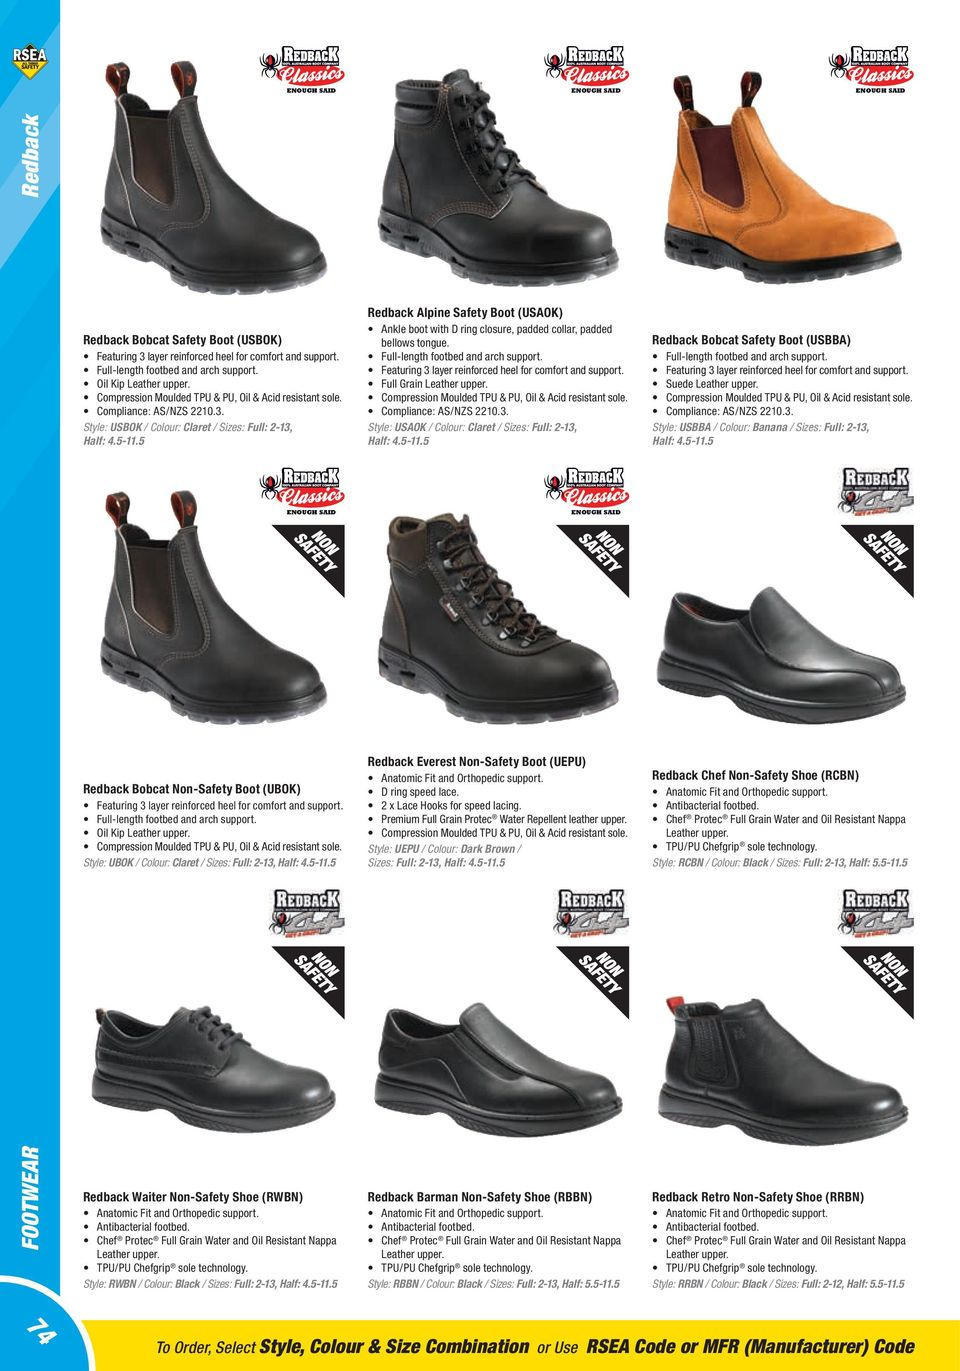 Footwear Australian New Zealand Standards 58 Preventing Cut Engineer Shoes Safety Boots Iron Suede Leather Soft Brown 5 Redback Alpine Boot Usaok Ankle With D Ring Closure Padded